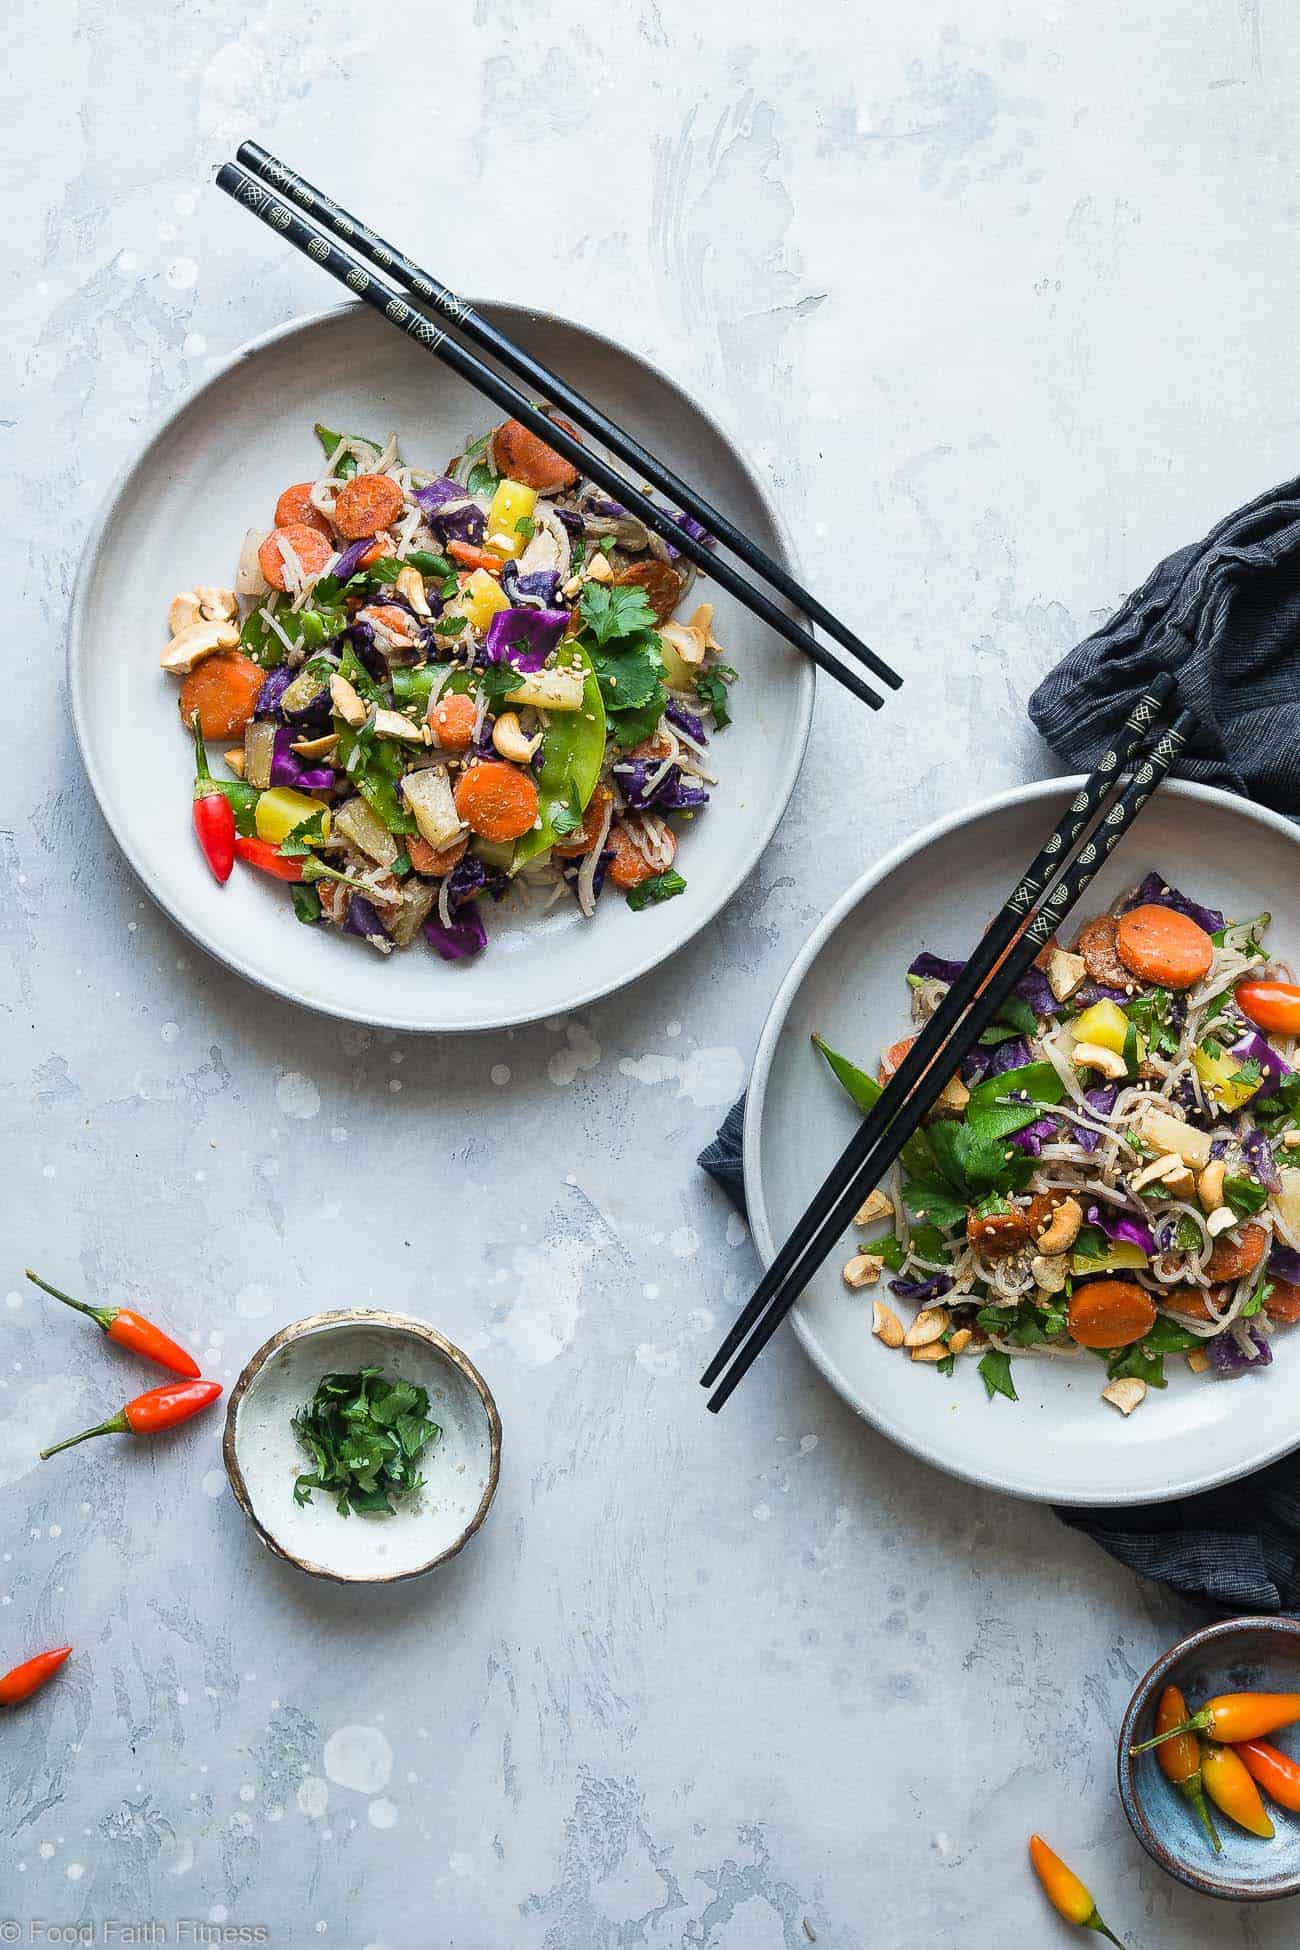 """Vegan """"Honey"""" Ginger Stir Fry with Cashew Cream - This Easy Healthy Vegetarian Stir Fryis a simple and quick vegan friendly dinner that is LOADED with vegetables and flavor! Even picky eaters will love this simple, dairy and gluten free recipe! 